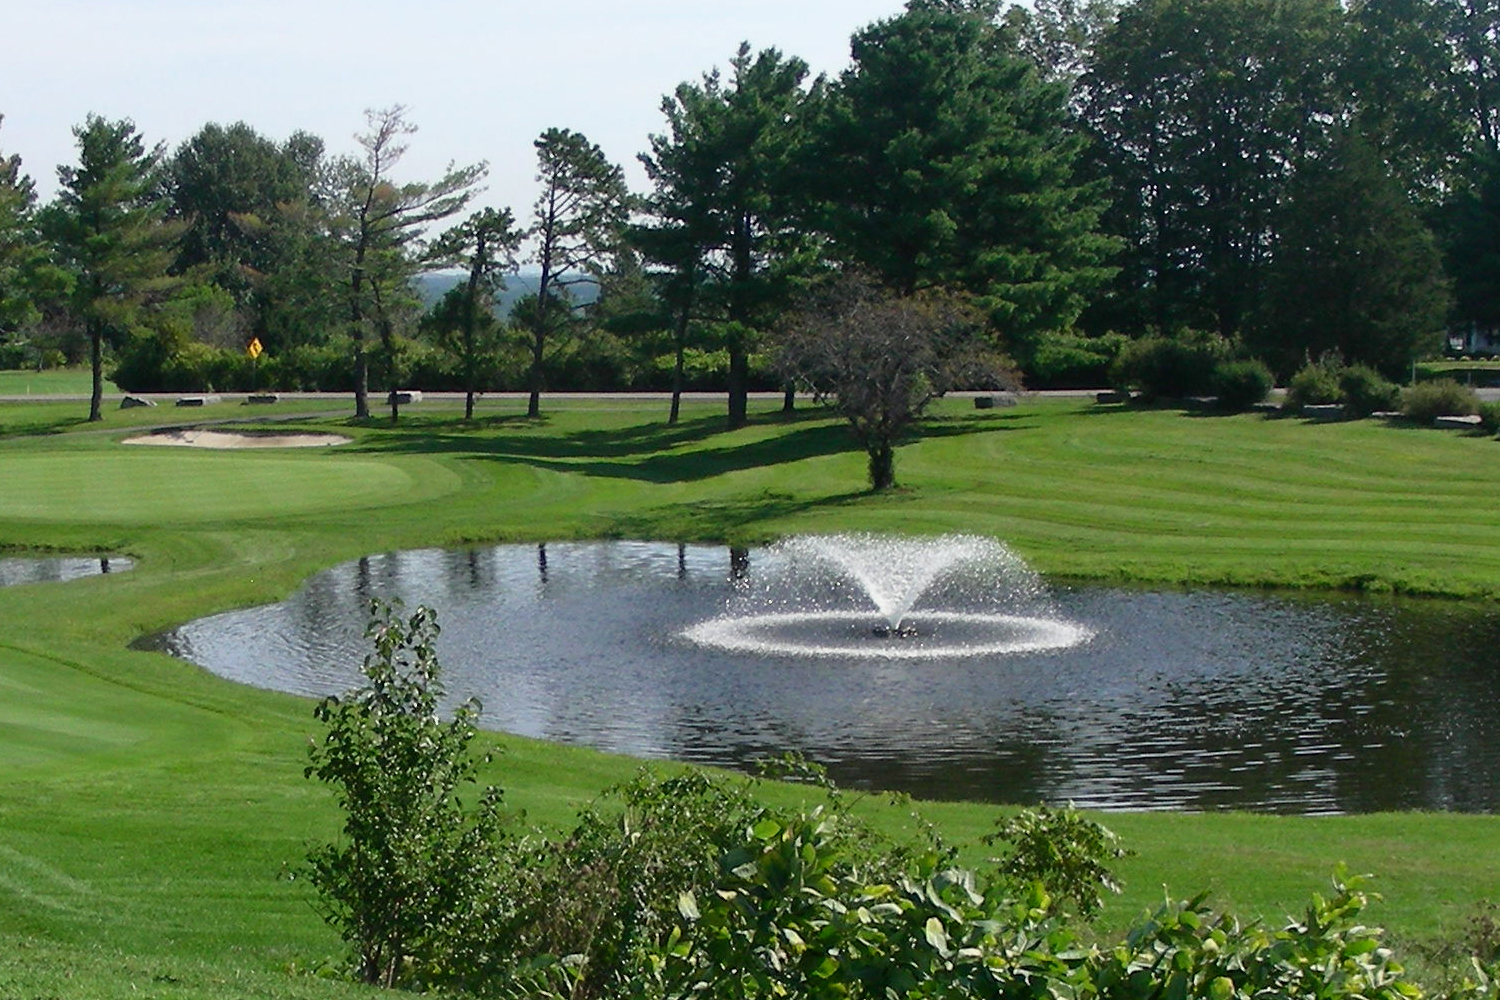 An Otterbine Sunburst Aerating Fountain in a golf course